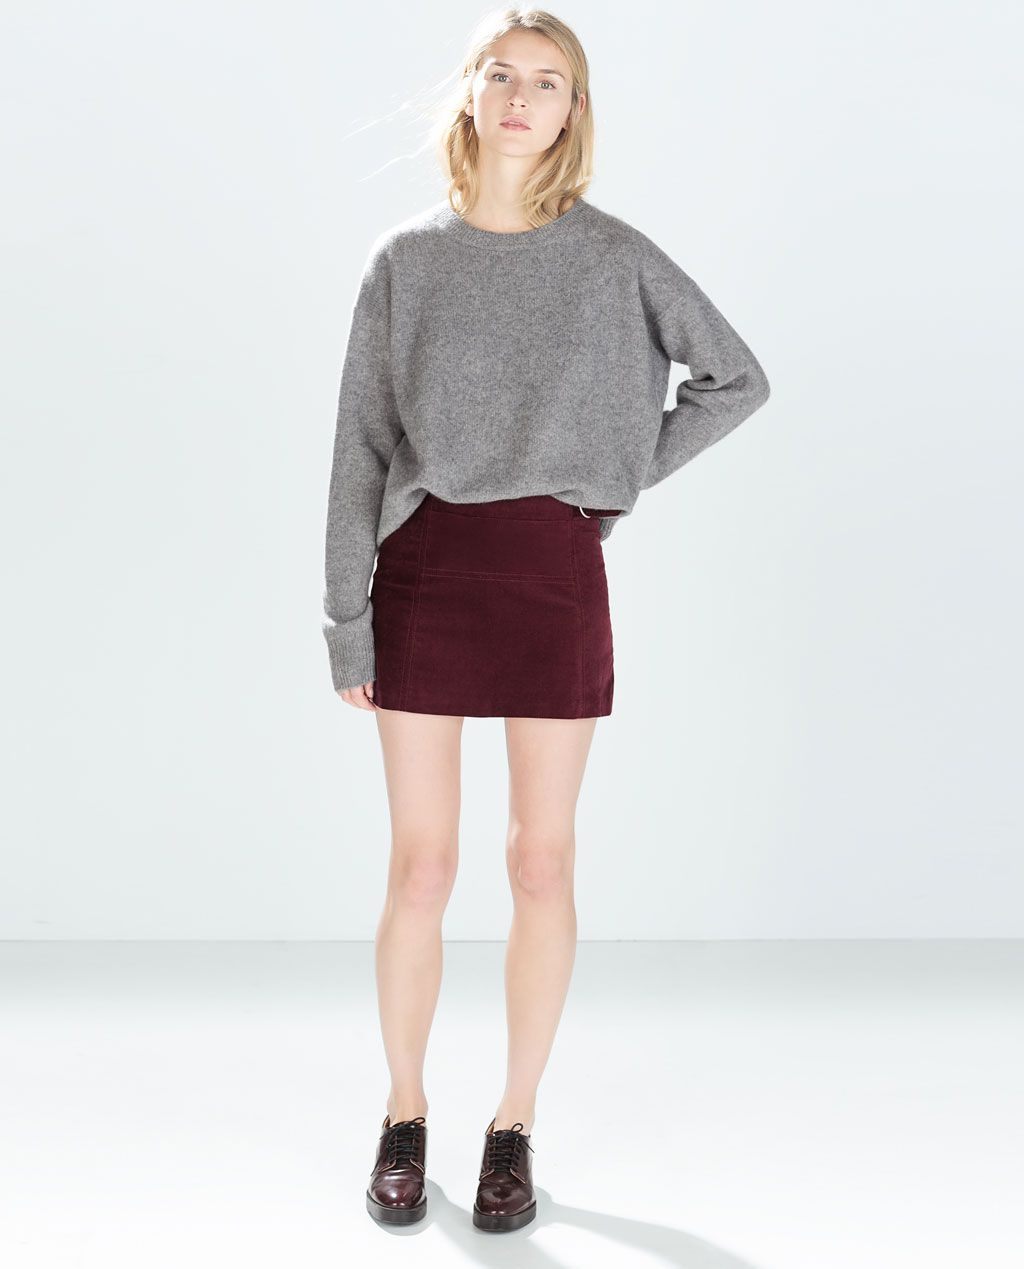 ZARA - NEW THIS WEEK - BUCKLED MOLESKIN MINISKIRT